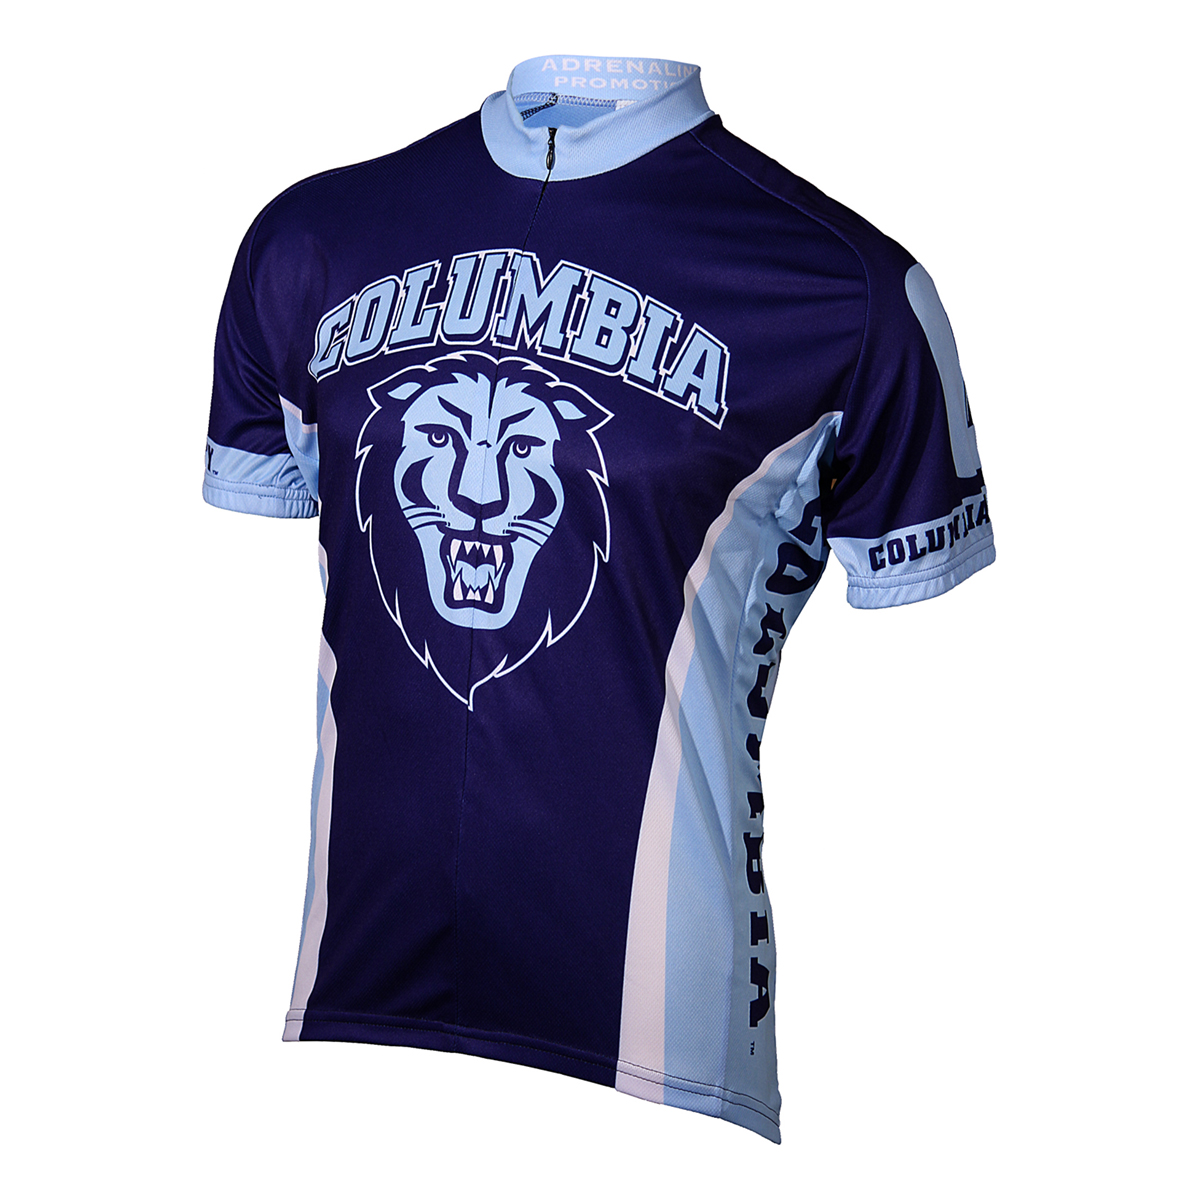 Adrenaline Promotions Columbia University Lions Cycling Jersey